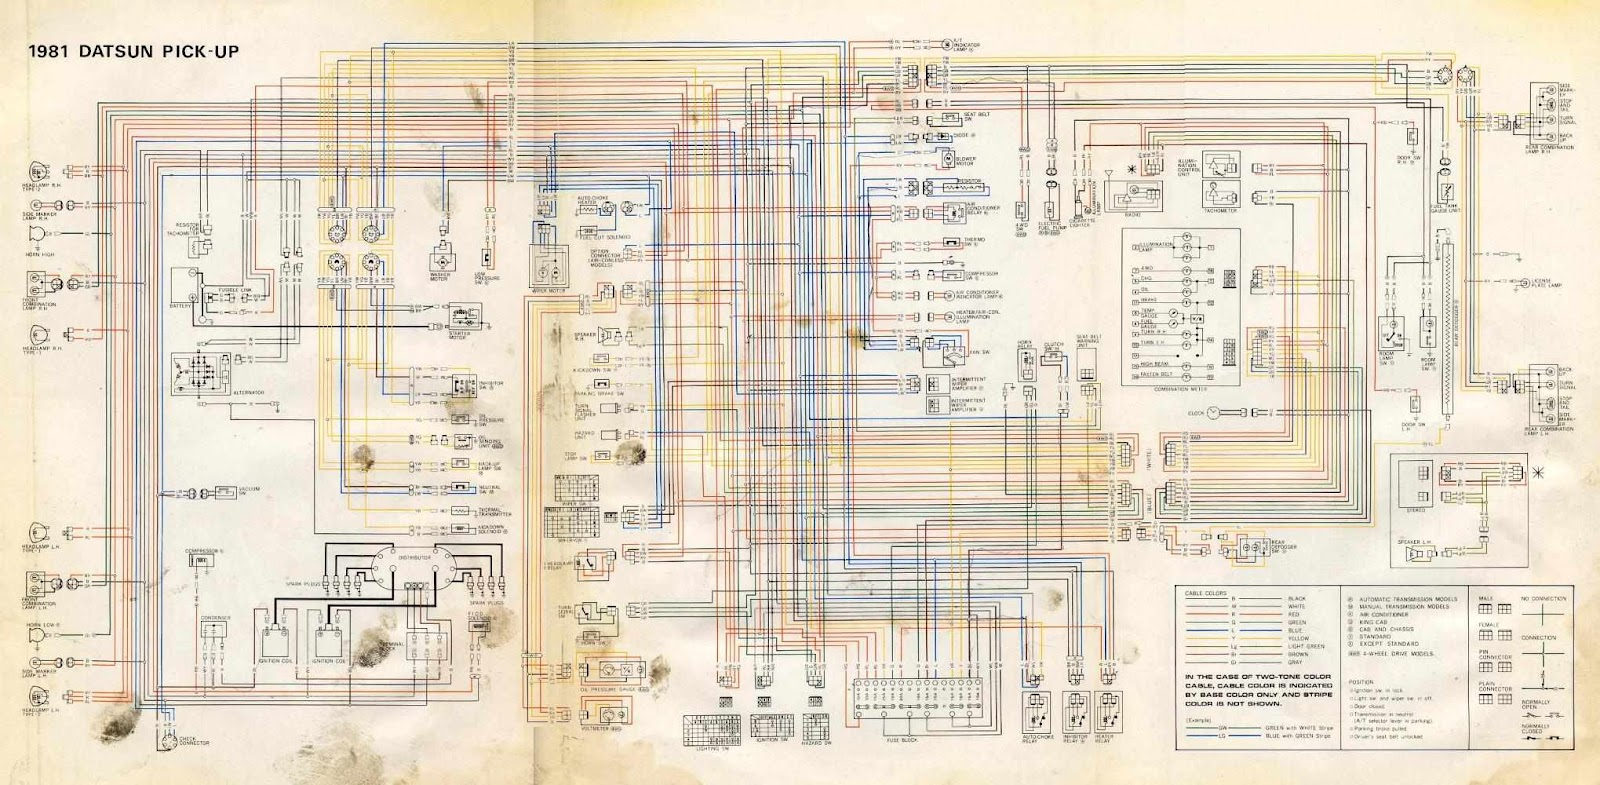 1984 nissan 720 wiring diagram 1984 image wiring datsun 620 wiring diagram datsun auto wiring diagram schematic on 1984 nissan 720 wiring diagram